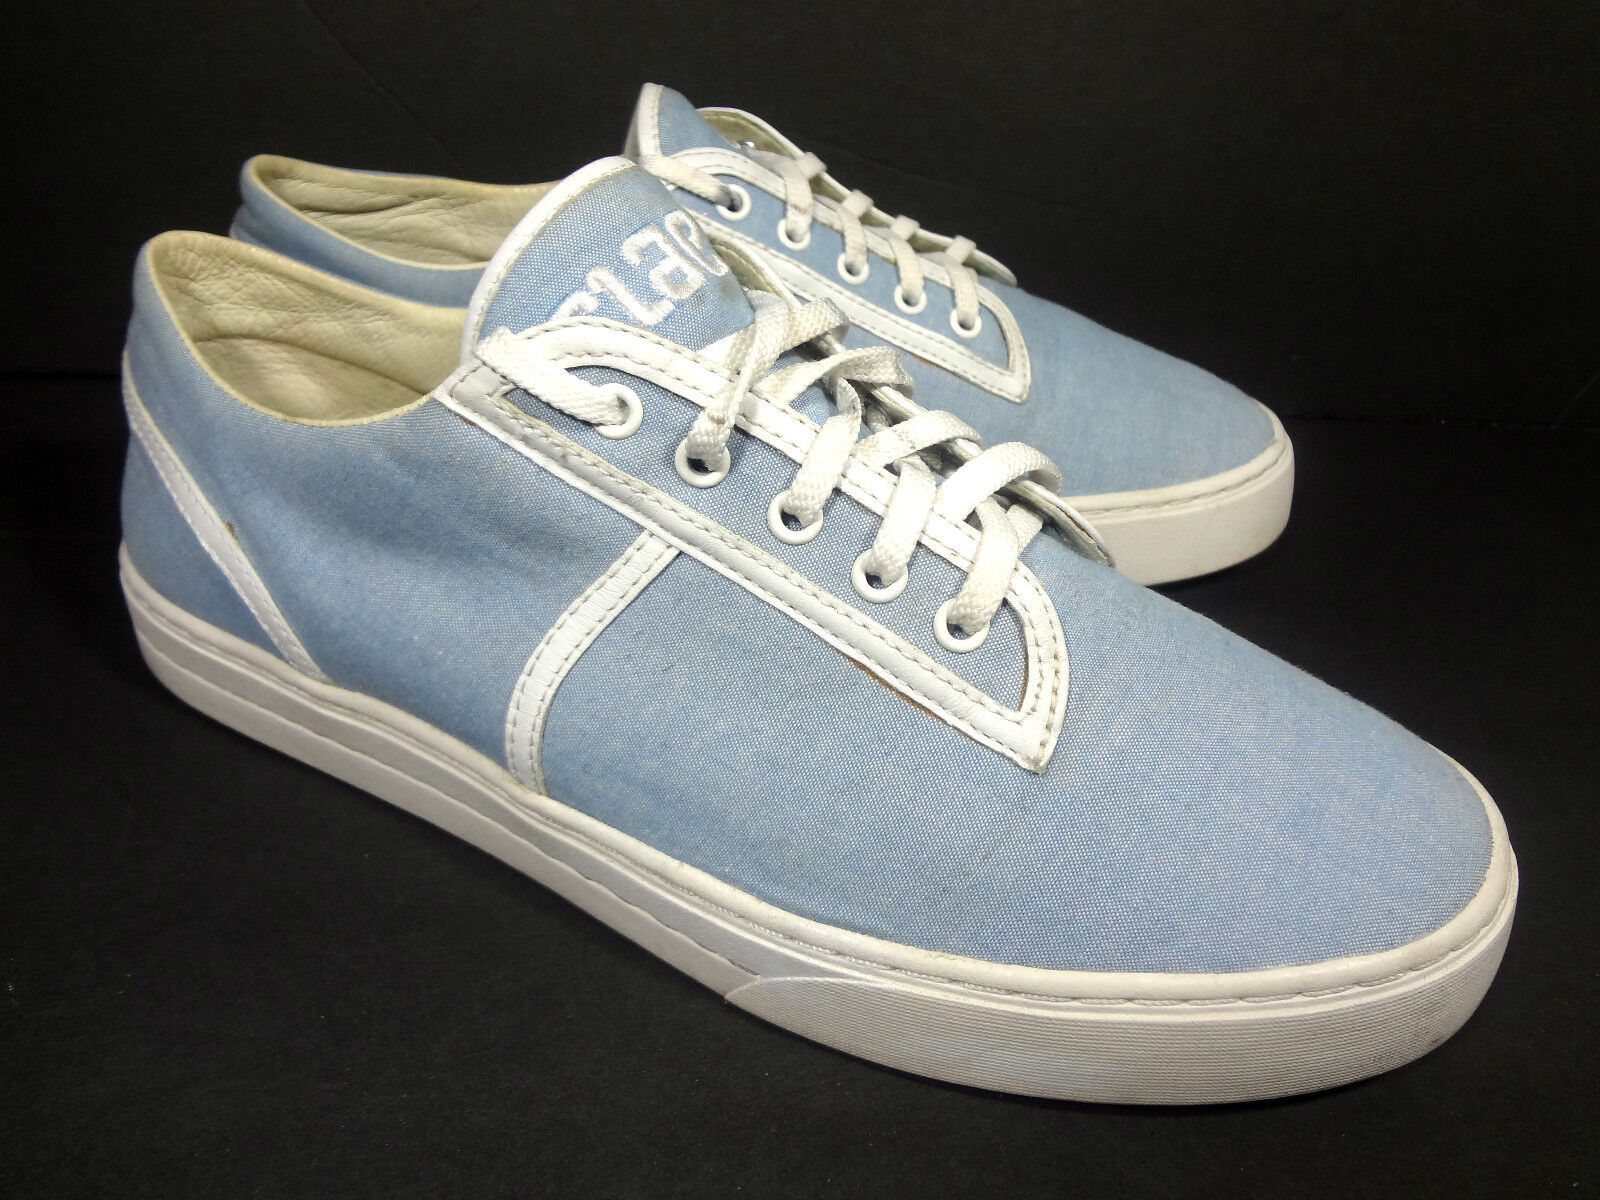 CLAE KENNEDY blueE CANVAS MEN'S SPORT CASUAL SNEAKERS SHOES SIZE 10.5